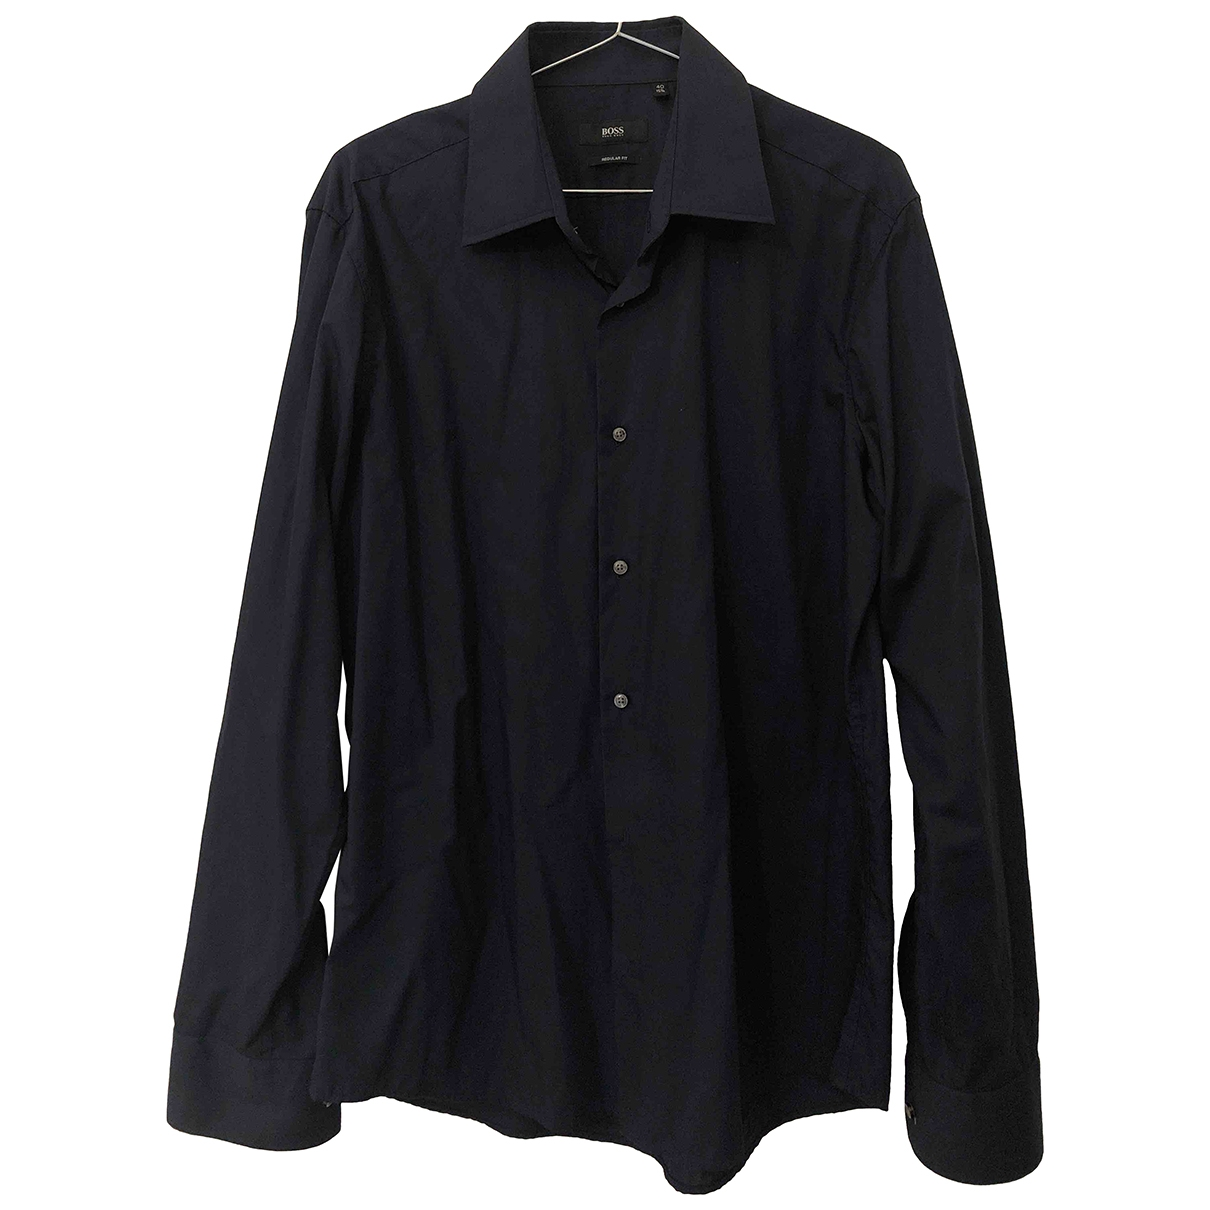 Boss \N Blue Cotton Shirts for Men 40 EU (tour de cou / collar)